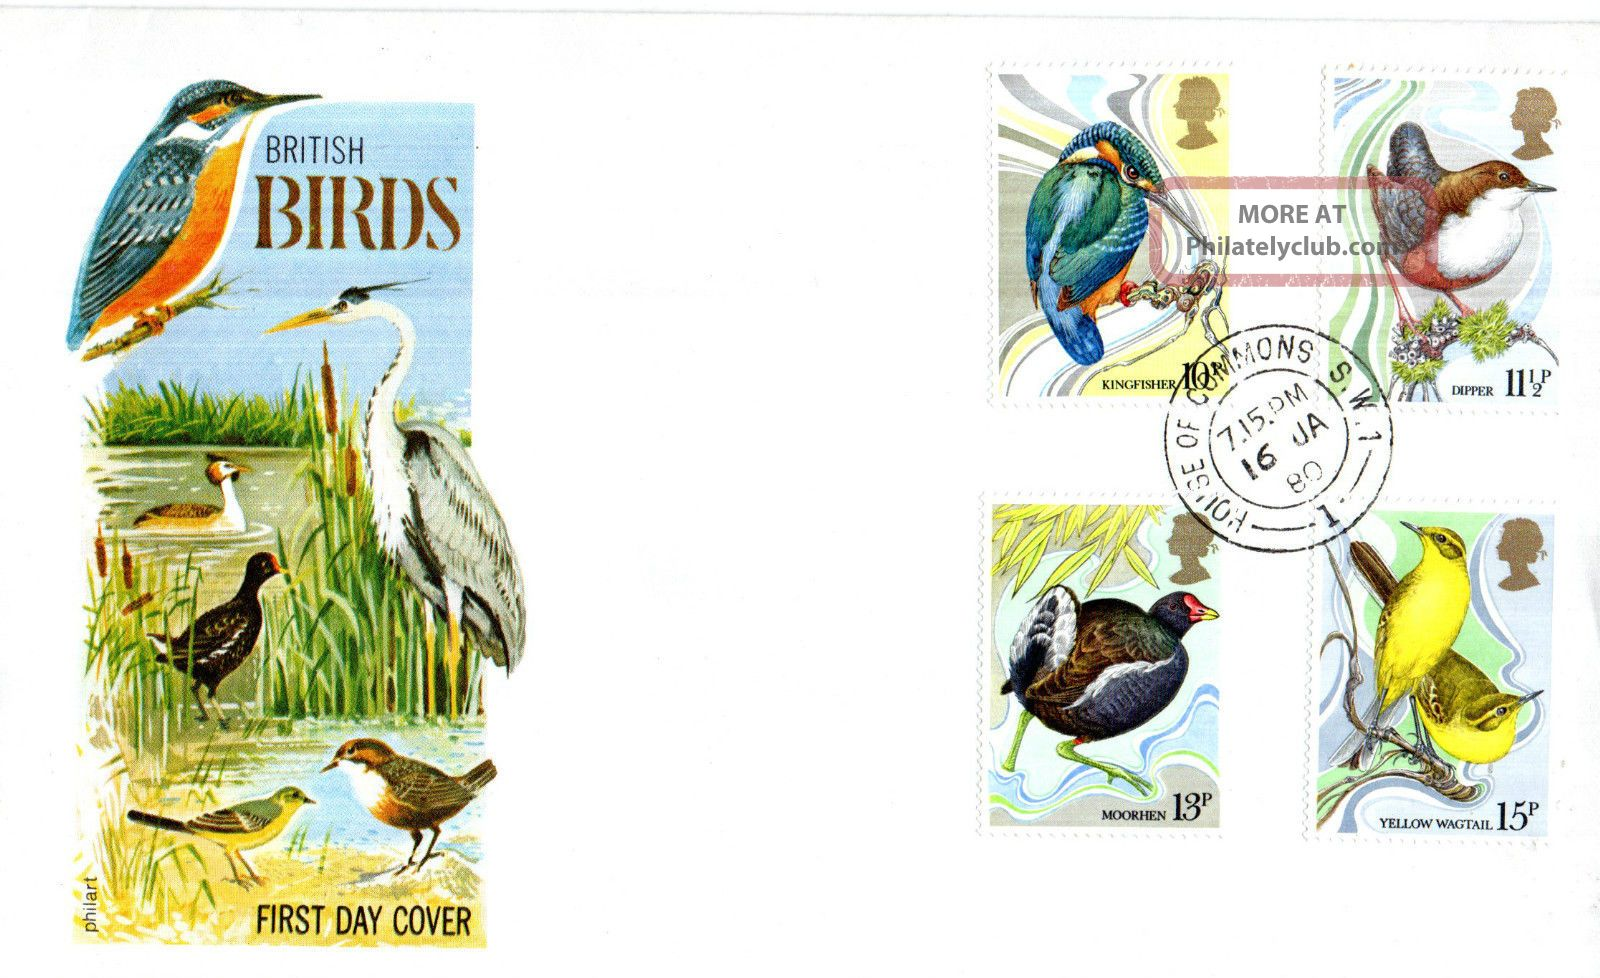 16 January 1980 British Birds Philart First Day Cover House Of Commons Sw1 Cds Animal Kingdom photo